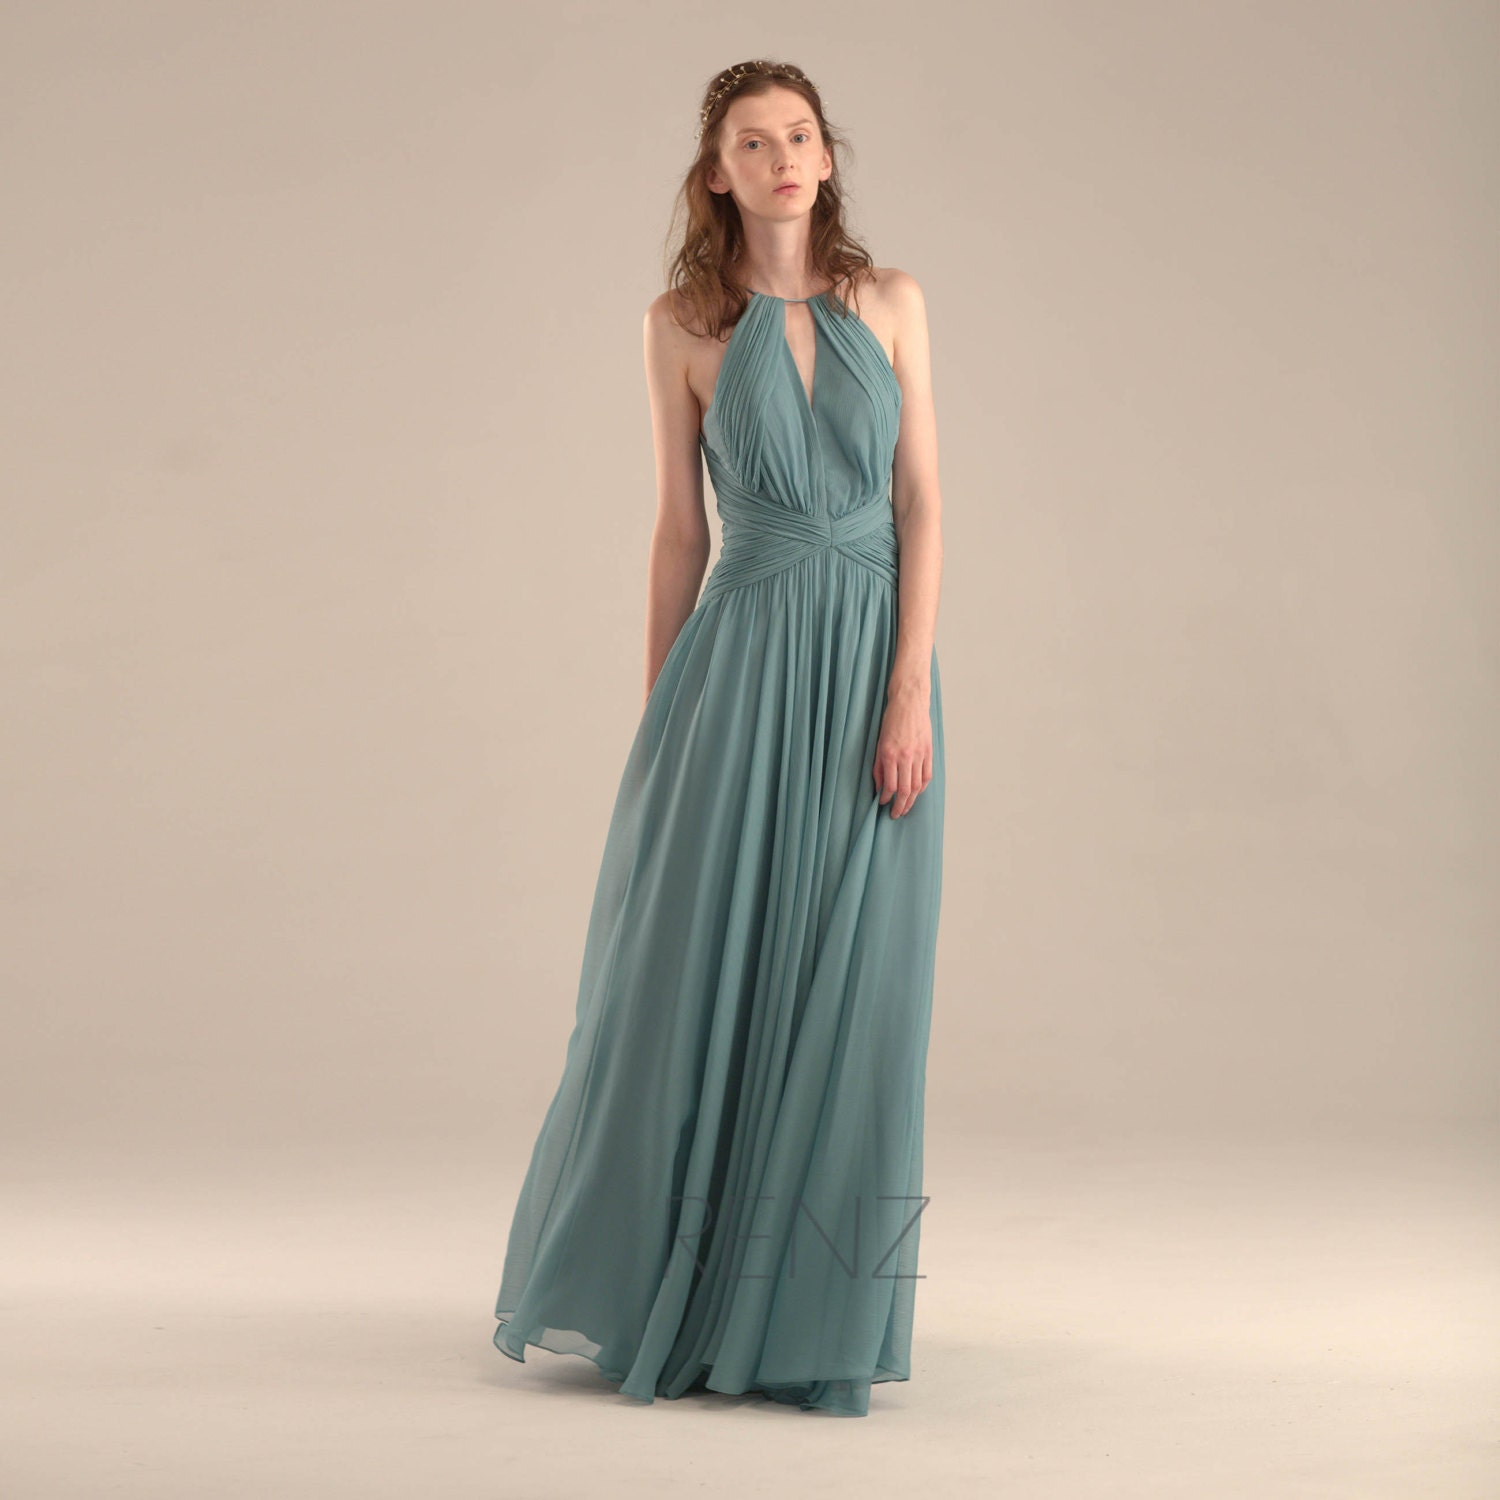 2016 Teal Halter Bridesmaid dress Turquoise Wedding by